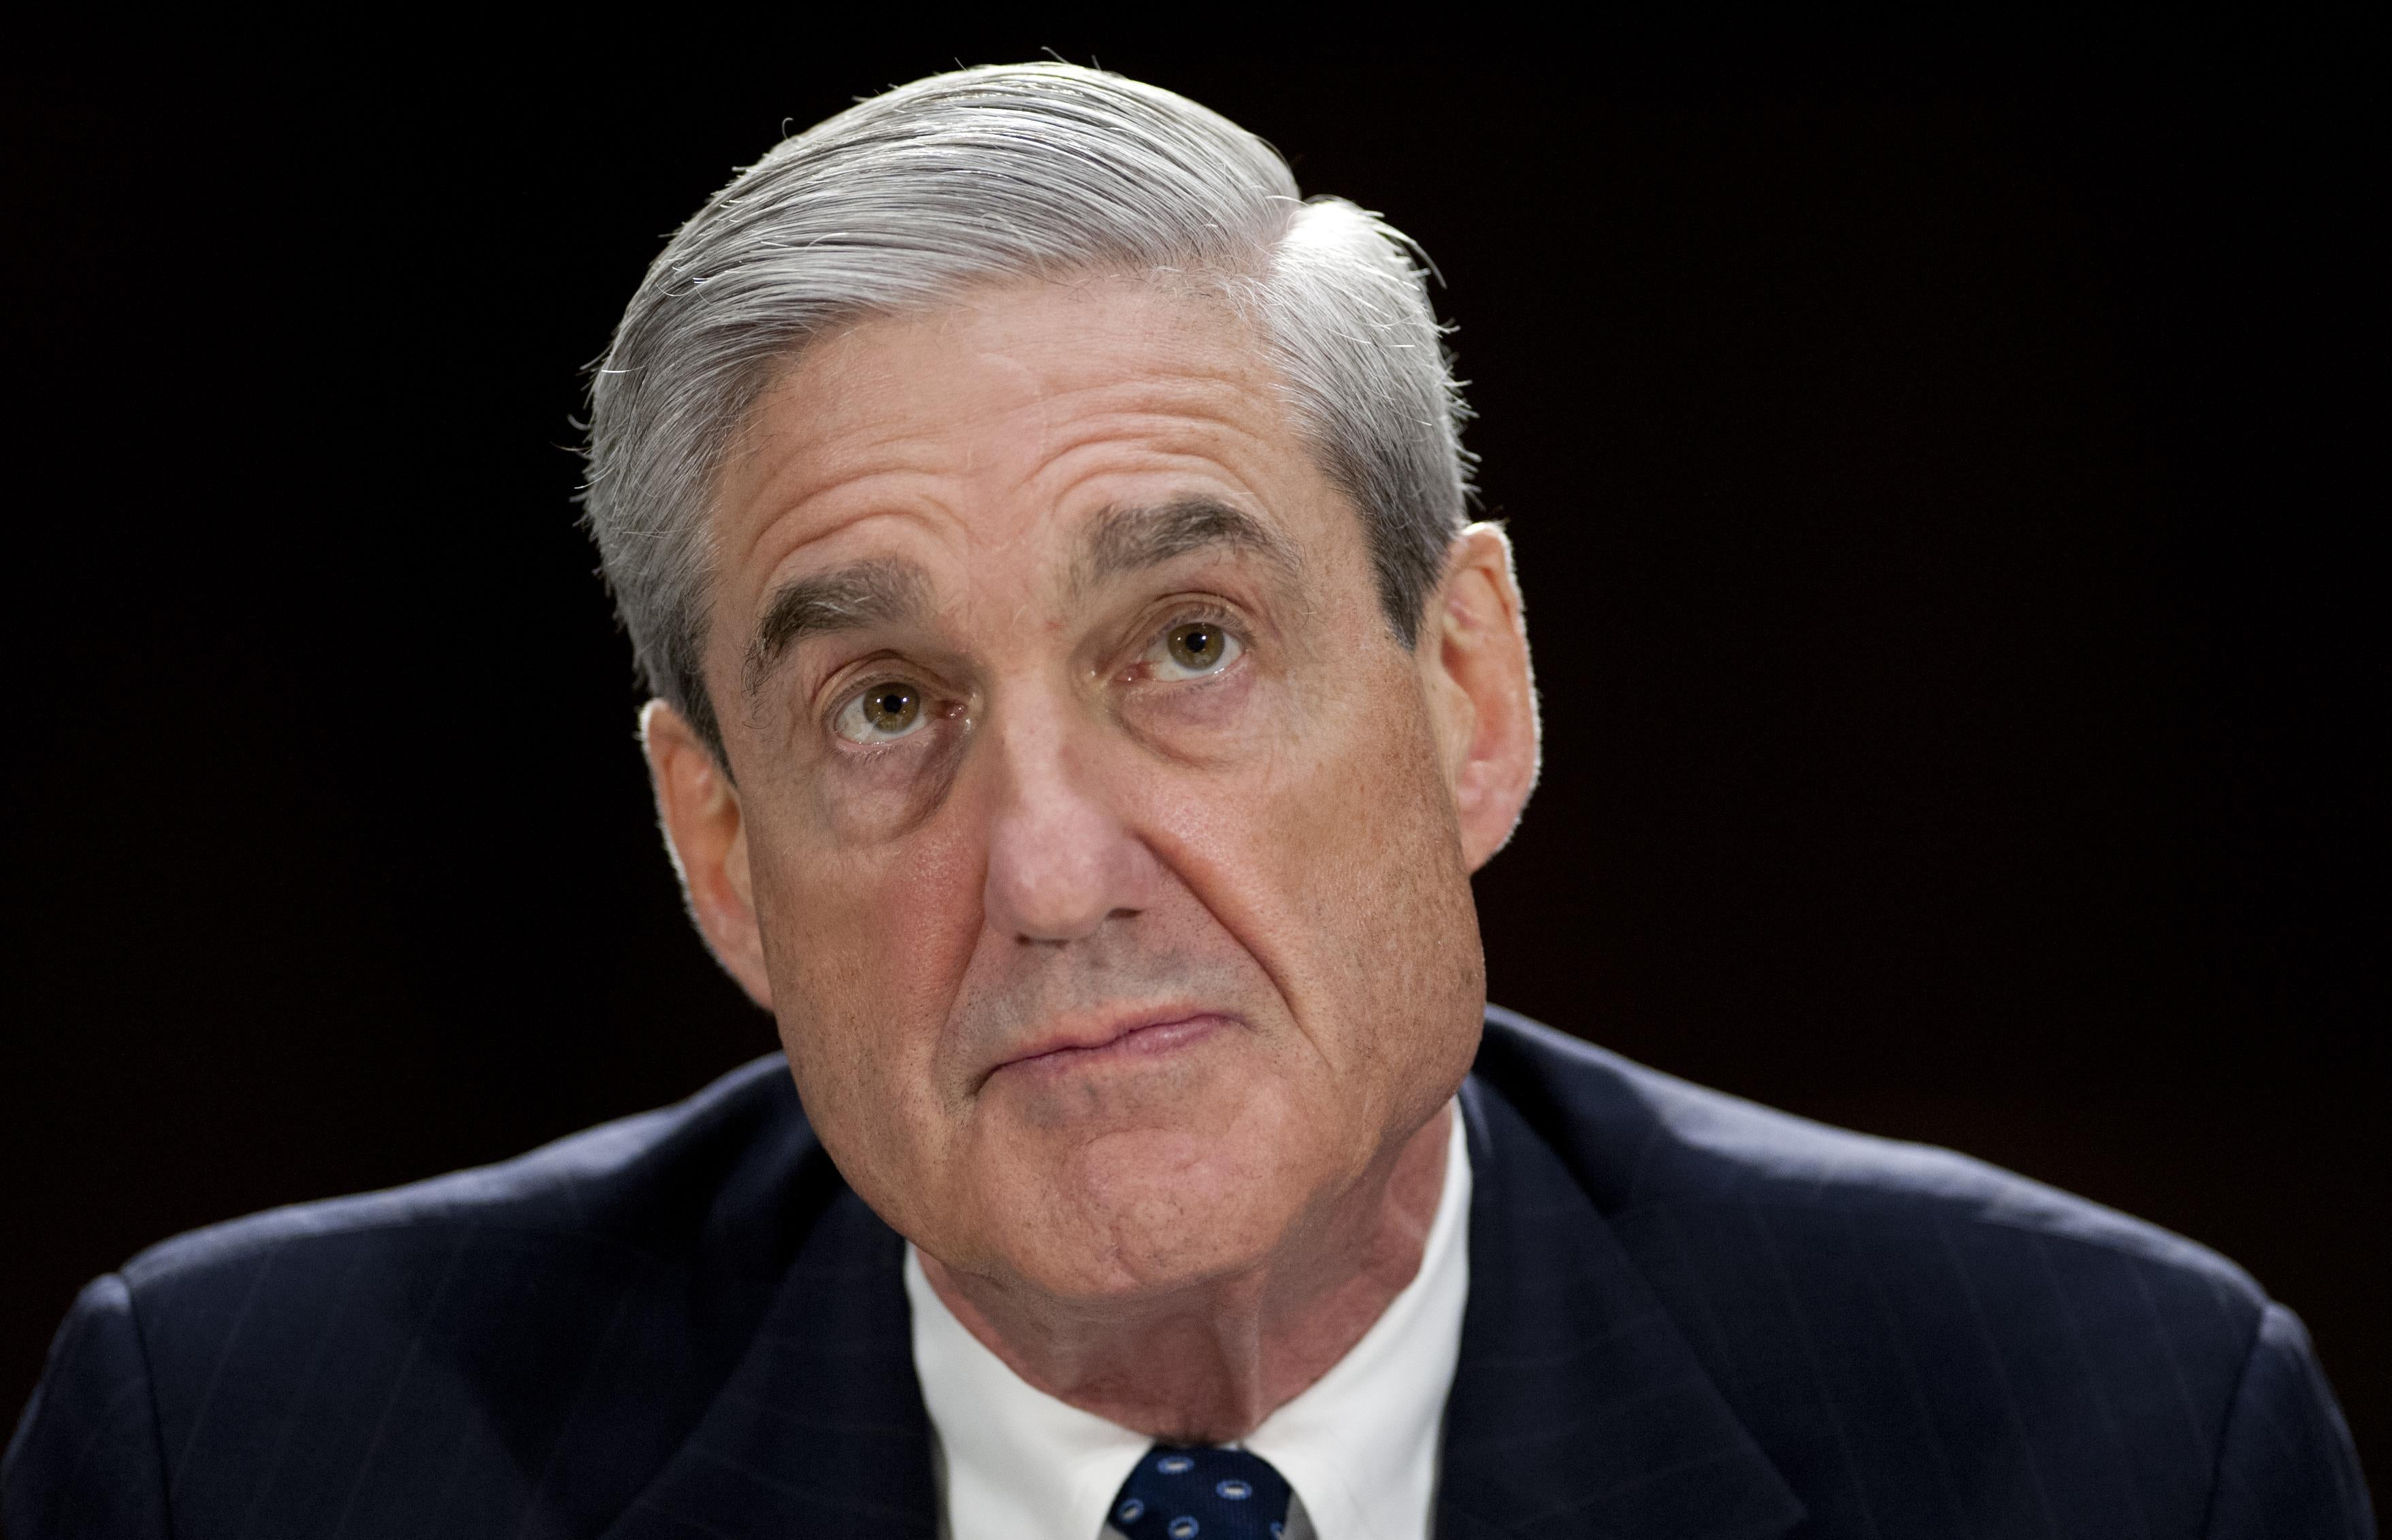 Mueller, in front of a background of black, looks upward.